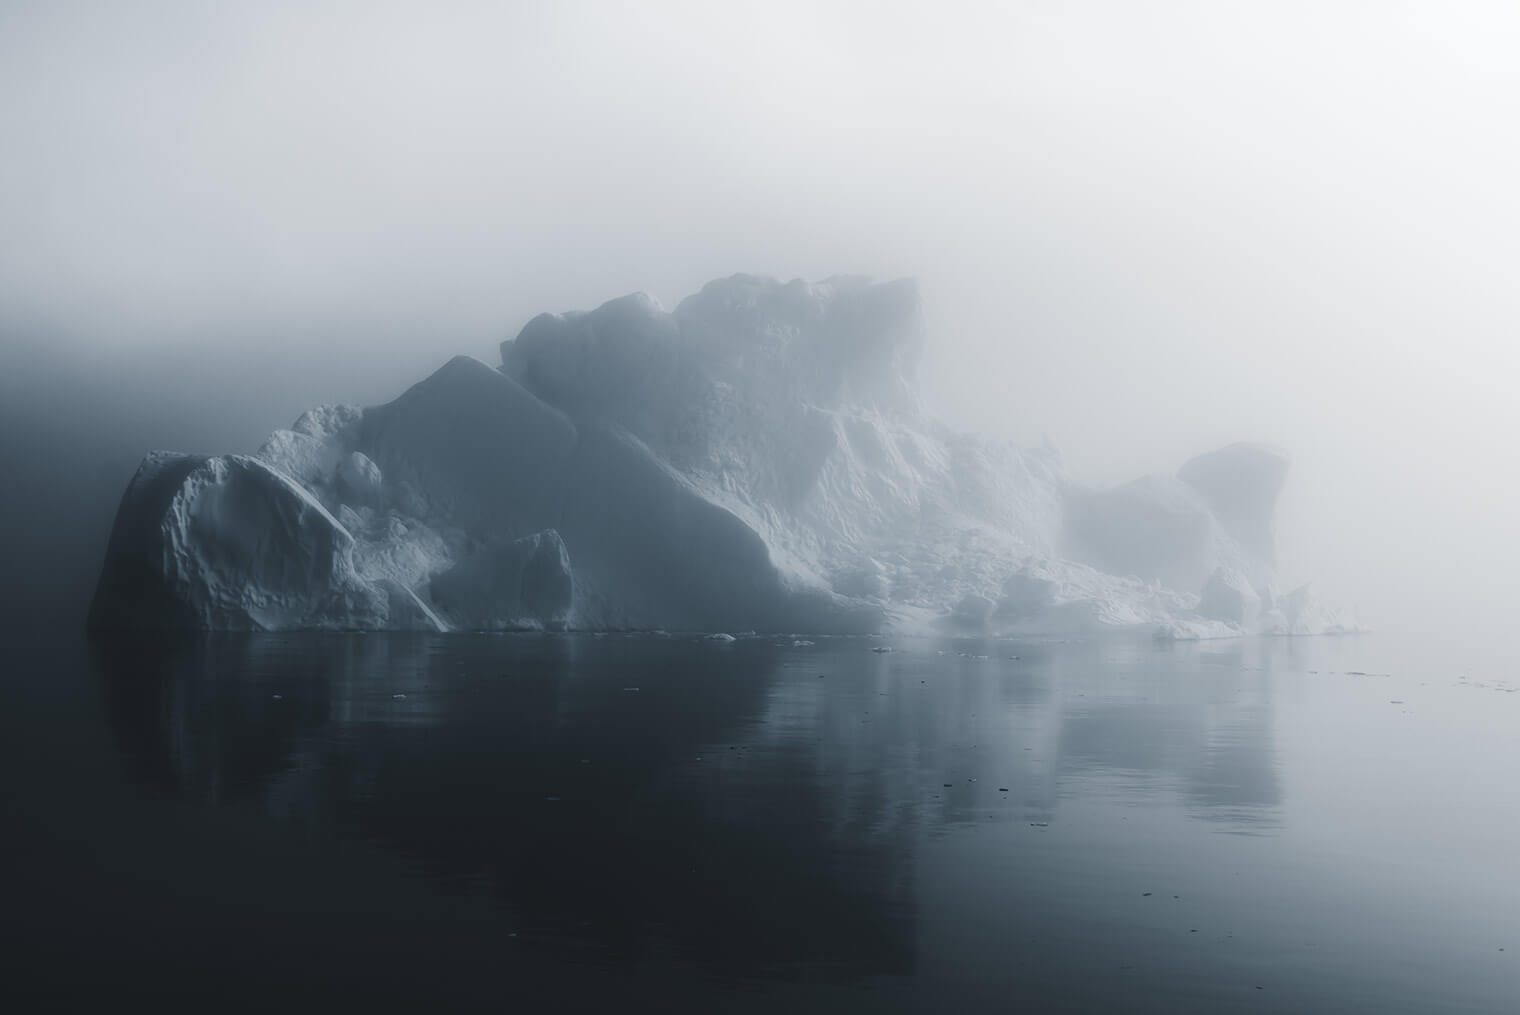 Landscape photography of Greenland by visual artist and photographer Jan Erik Waider